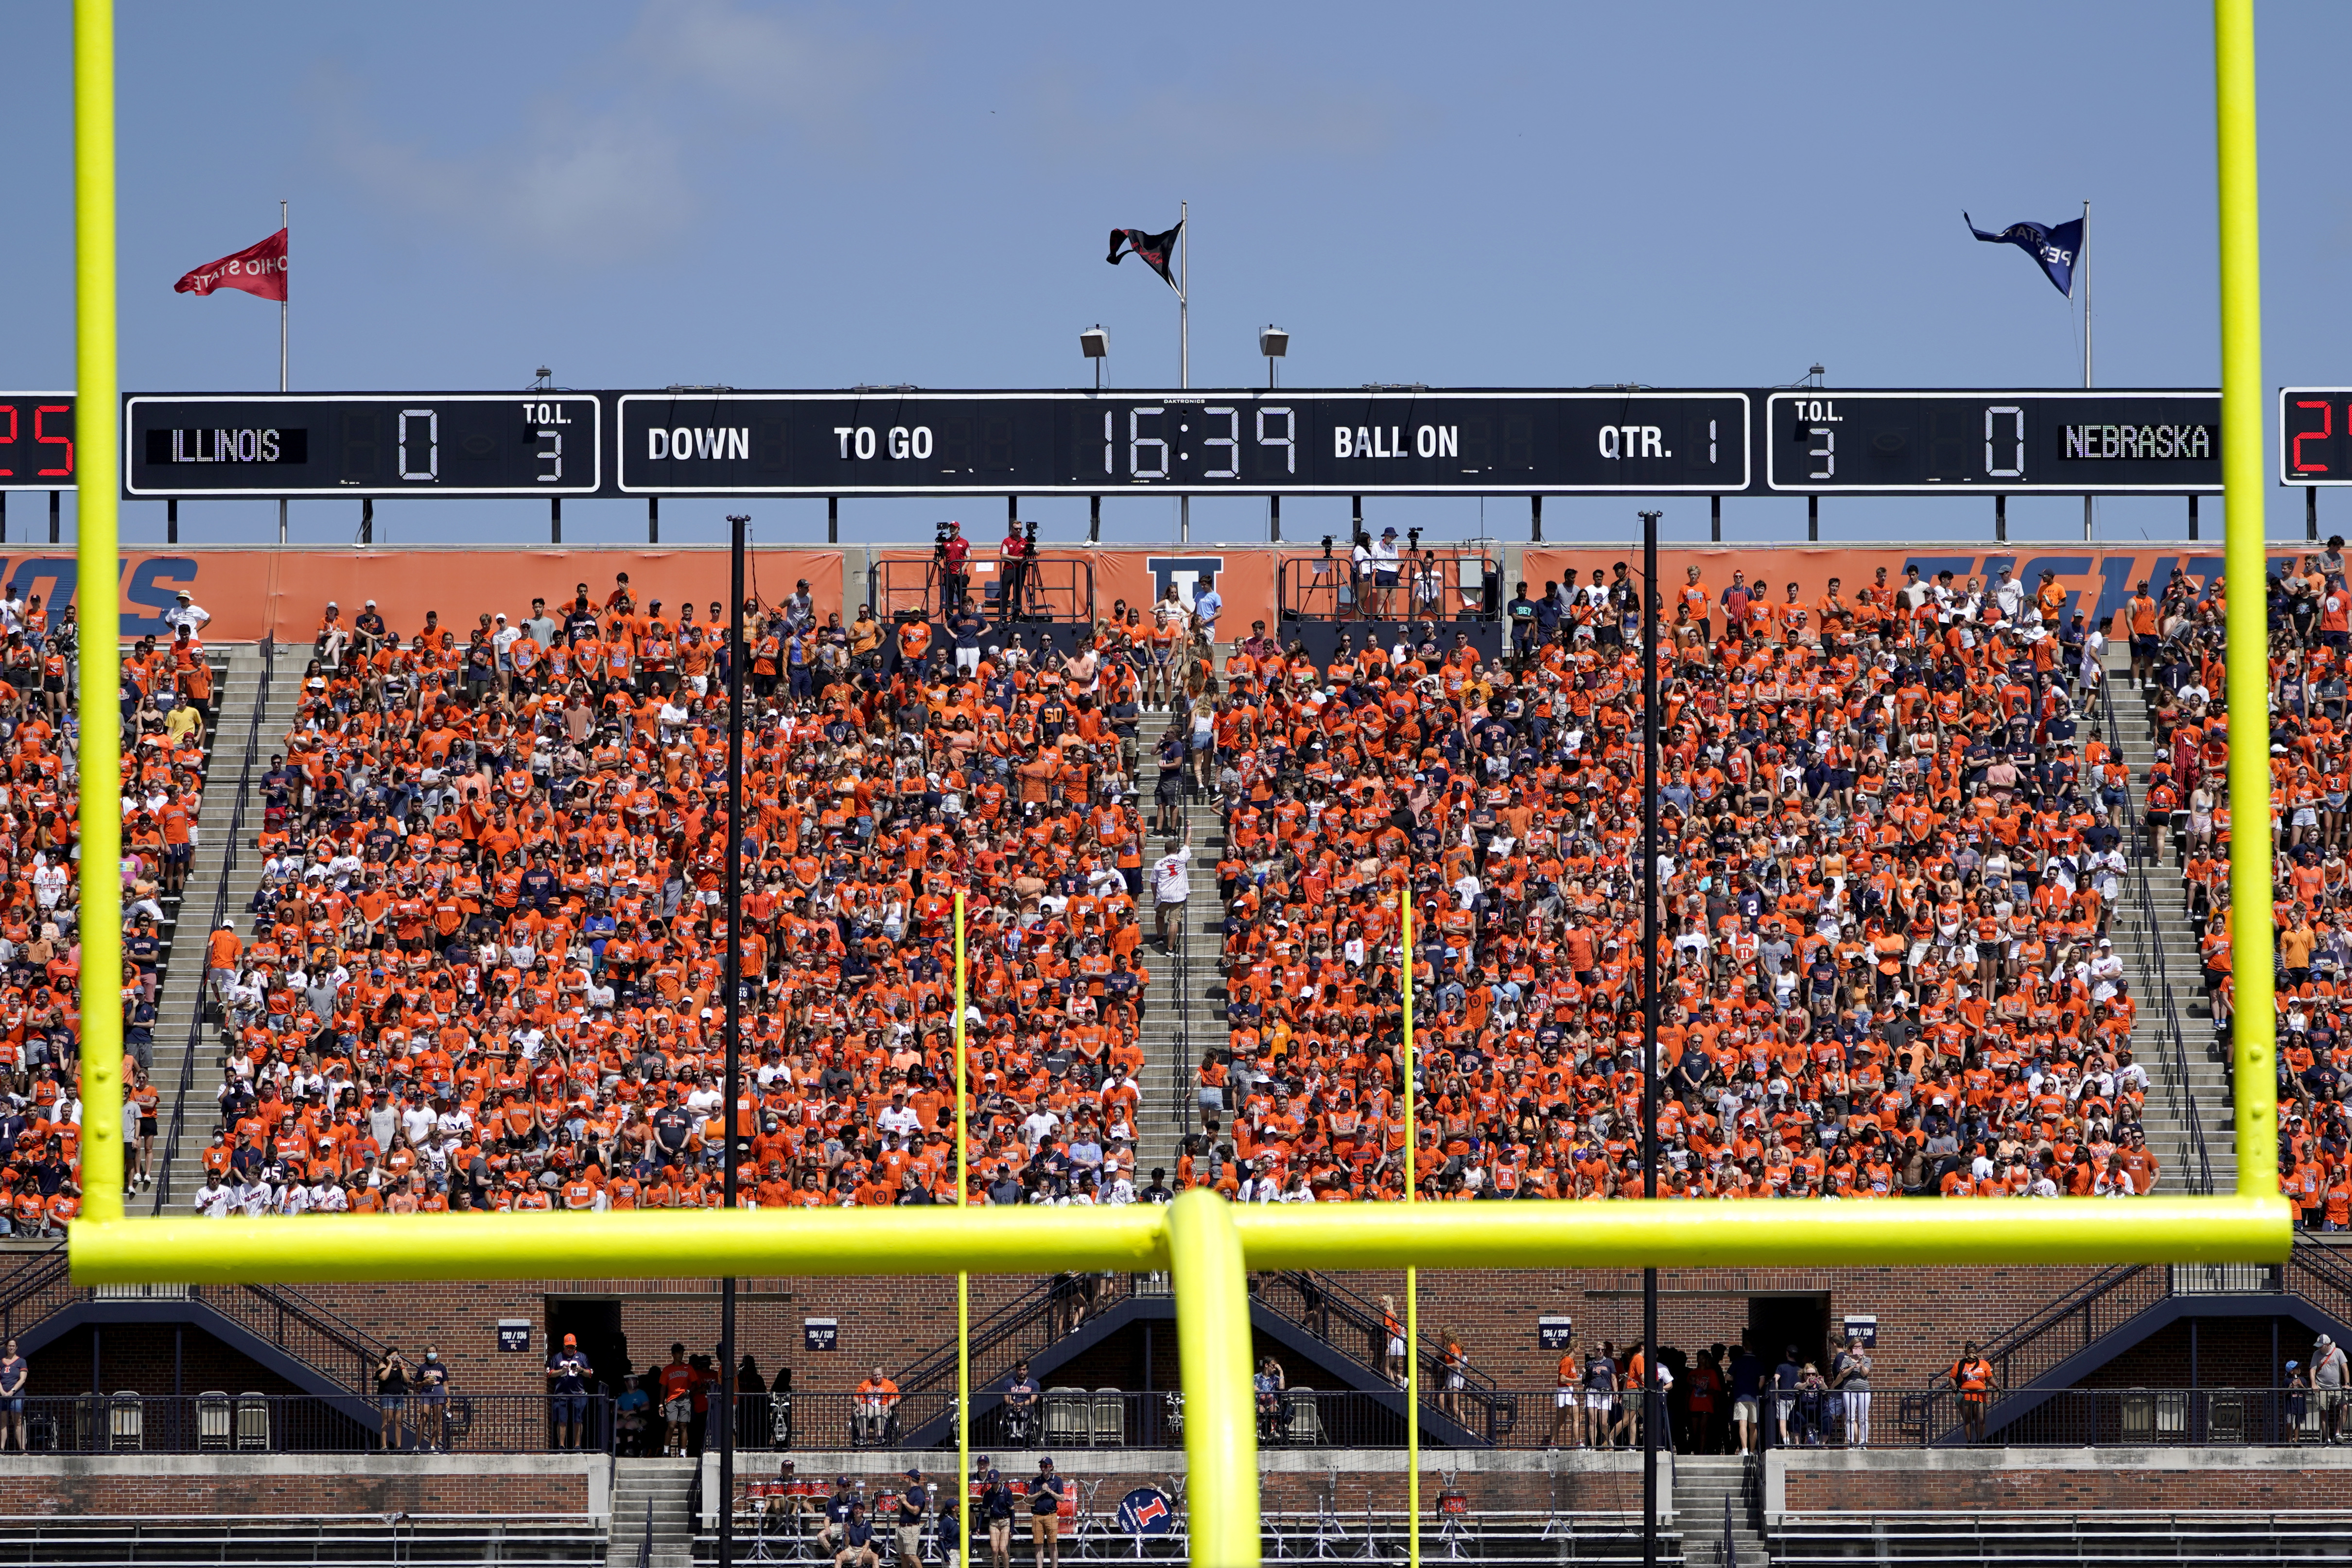 Fans return to Memorial Stadium during game between Illinois and Nebraska Saturday, Aug. 28, 2021, in Champaign, Ill.